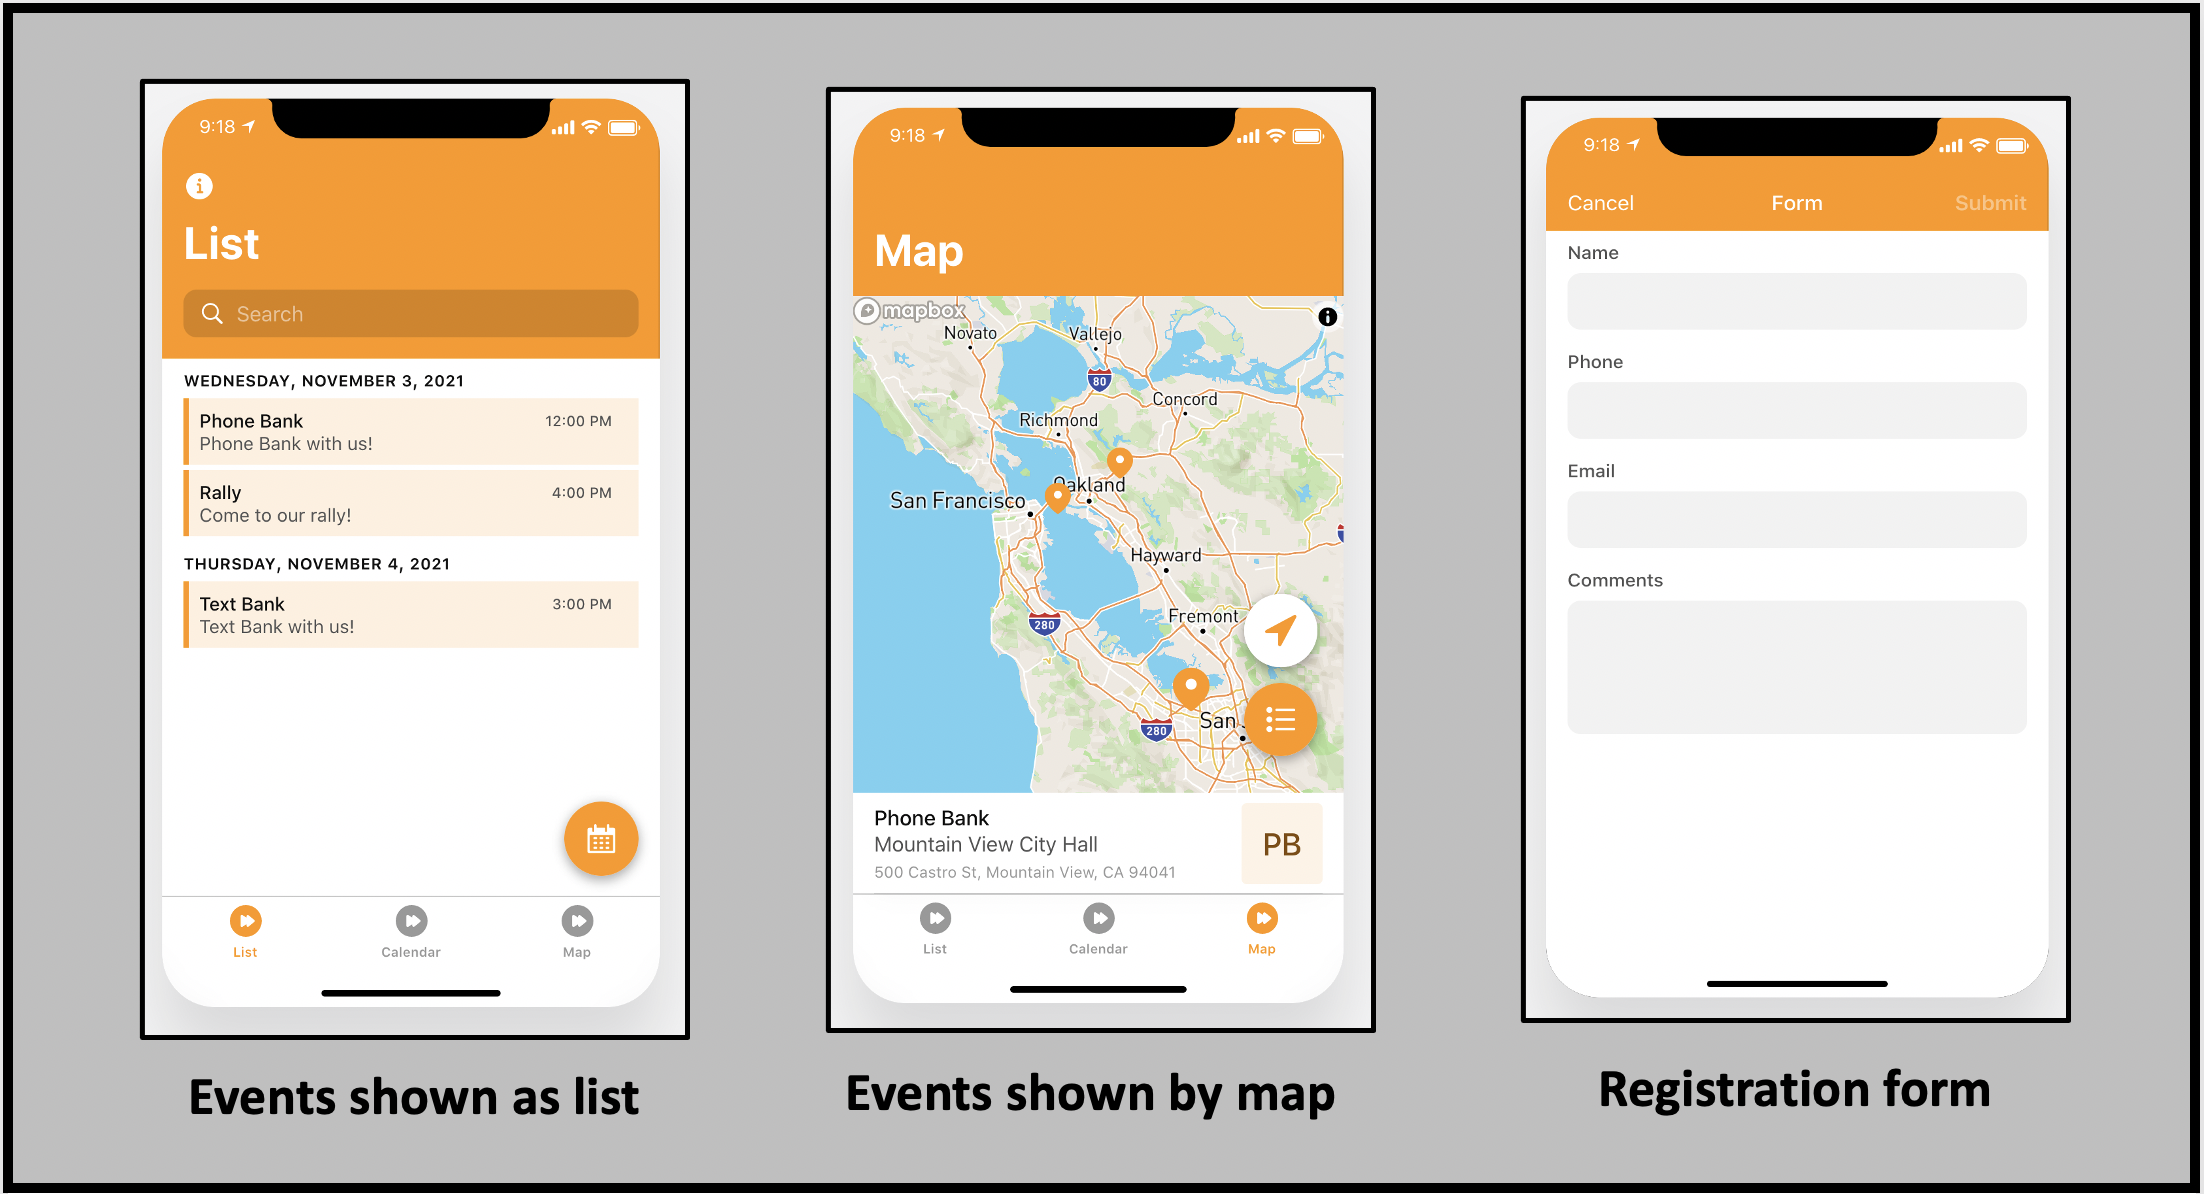 Share event details as a list, calendar or map to make it easy for people to sign up for them with the free SignMeUp app.